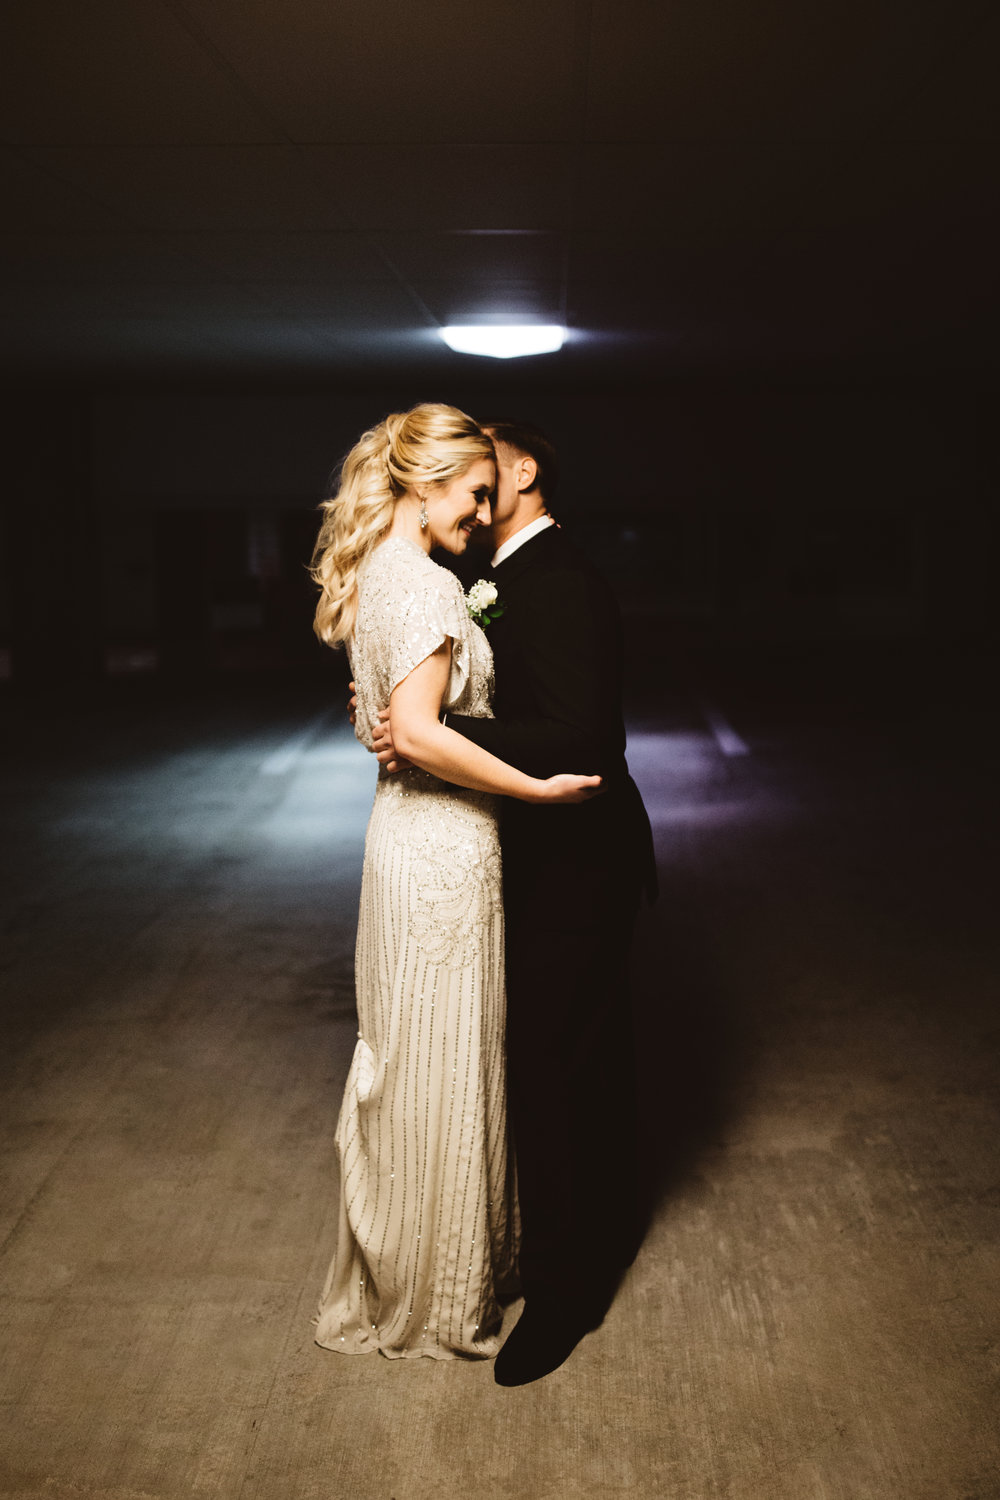 Mattie Bell Photography- Kelly & Zack Wedding Atlanta Brewery -239.jpg